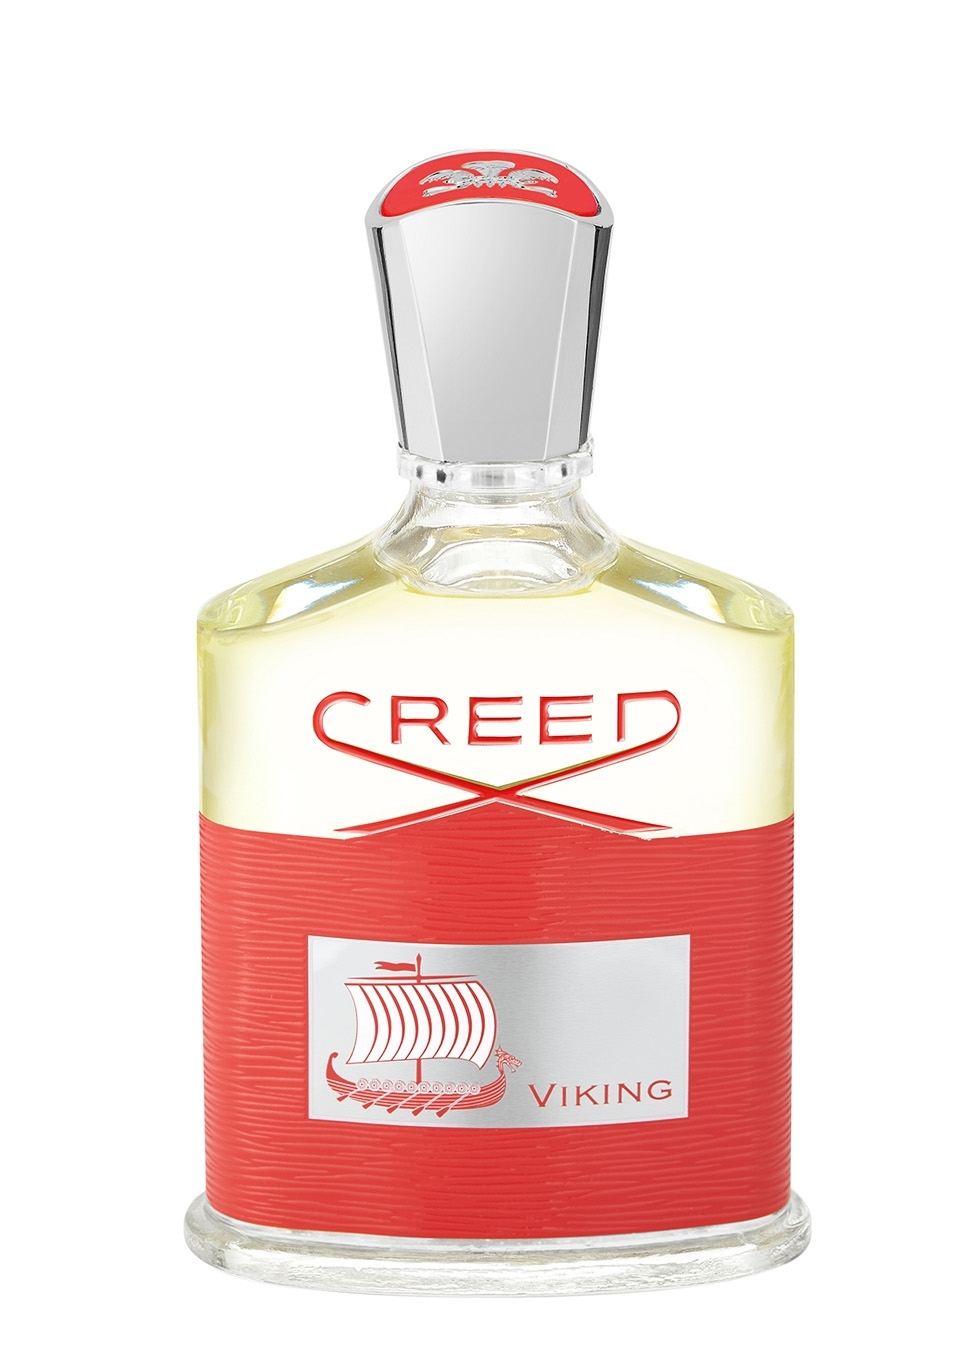 Creed Mens Womens Aftershave Perfume Harvey Nichols